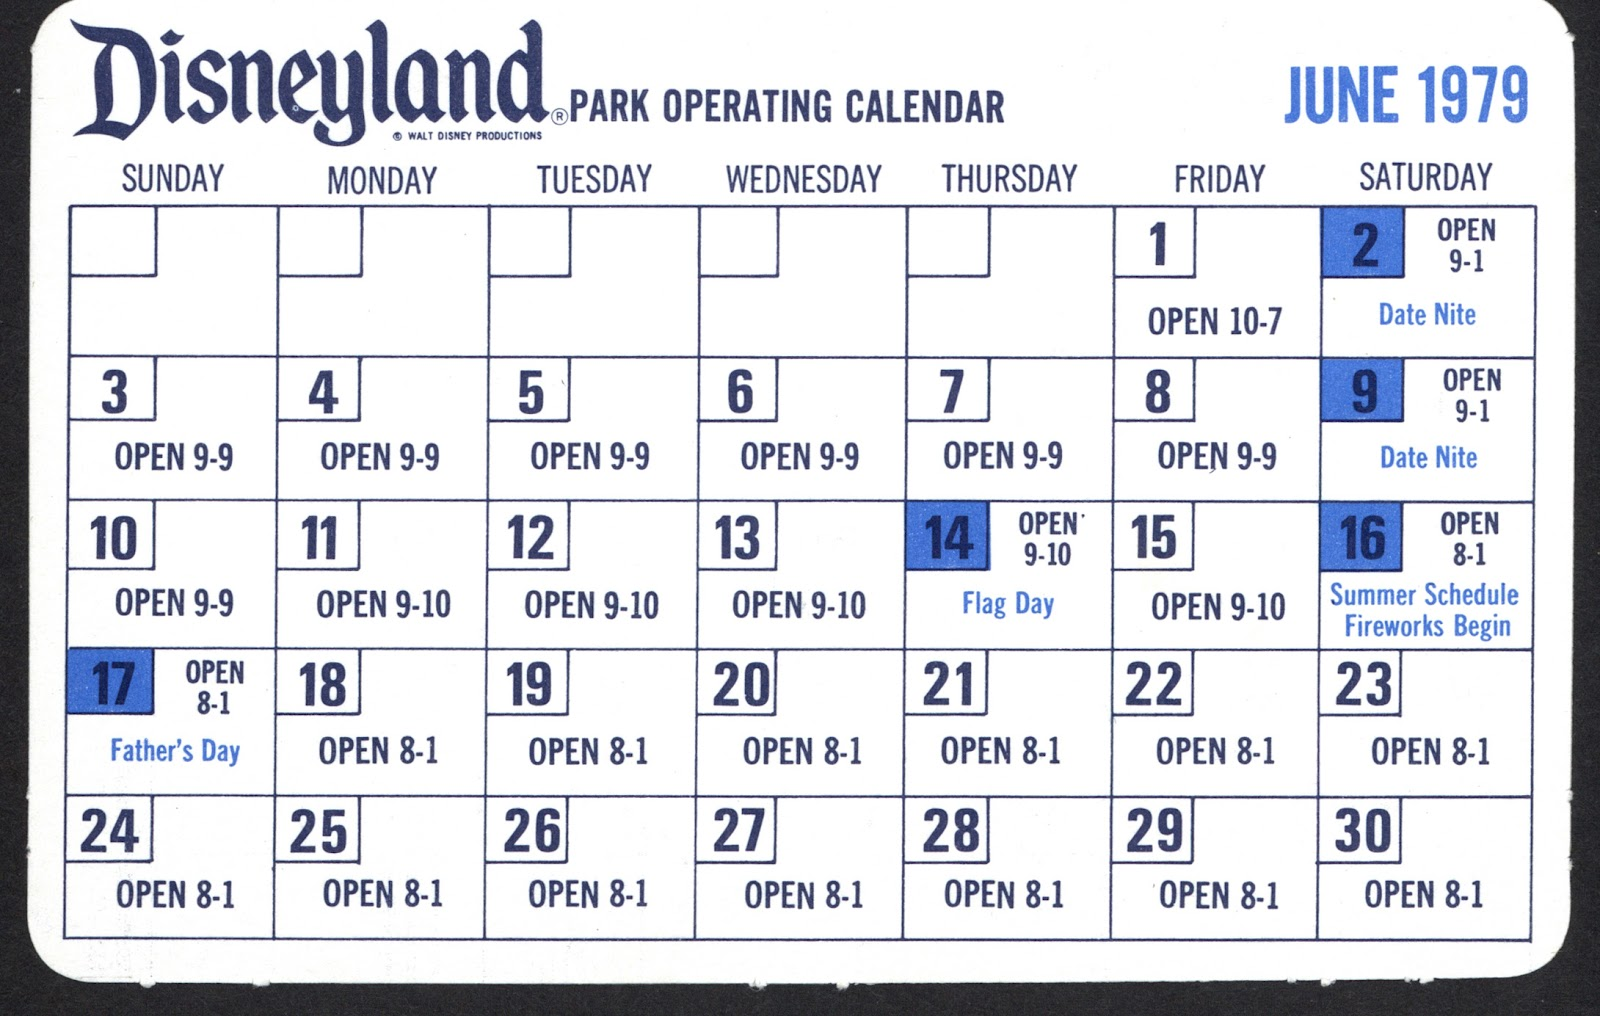 Vintage Disneyland Tickets Disneyland Park Operating Calendar 1979